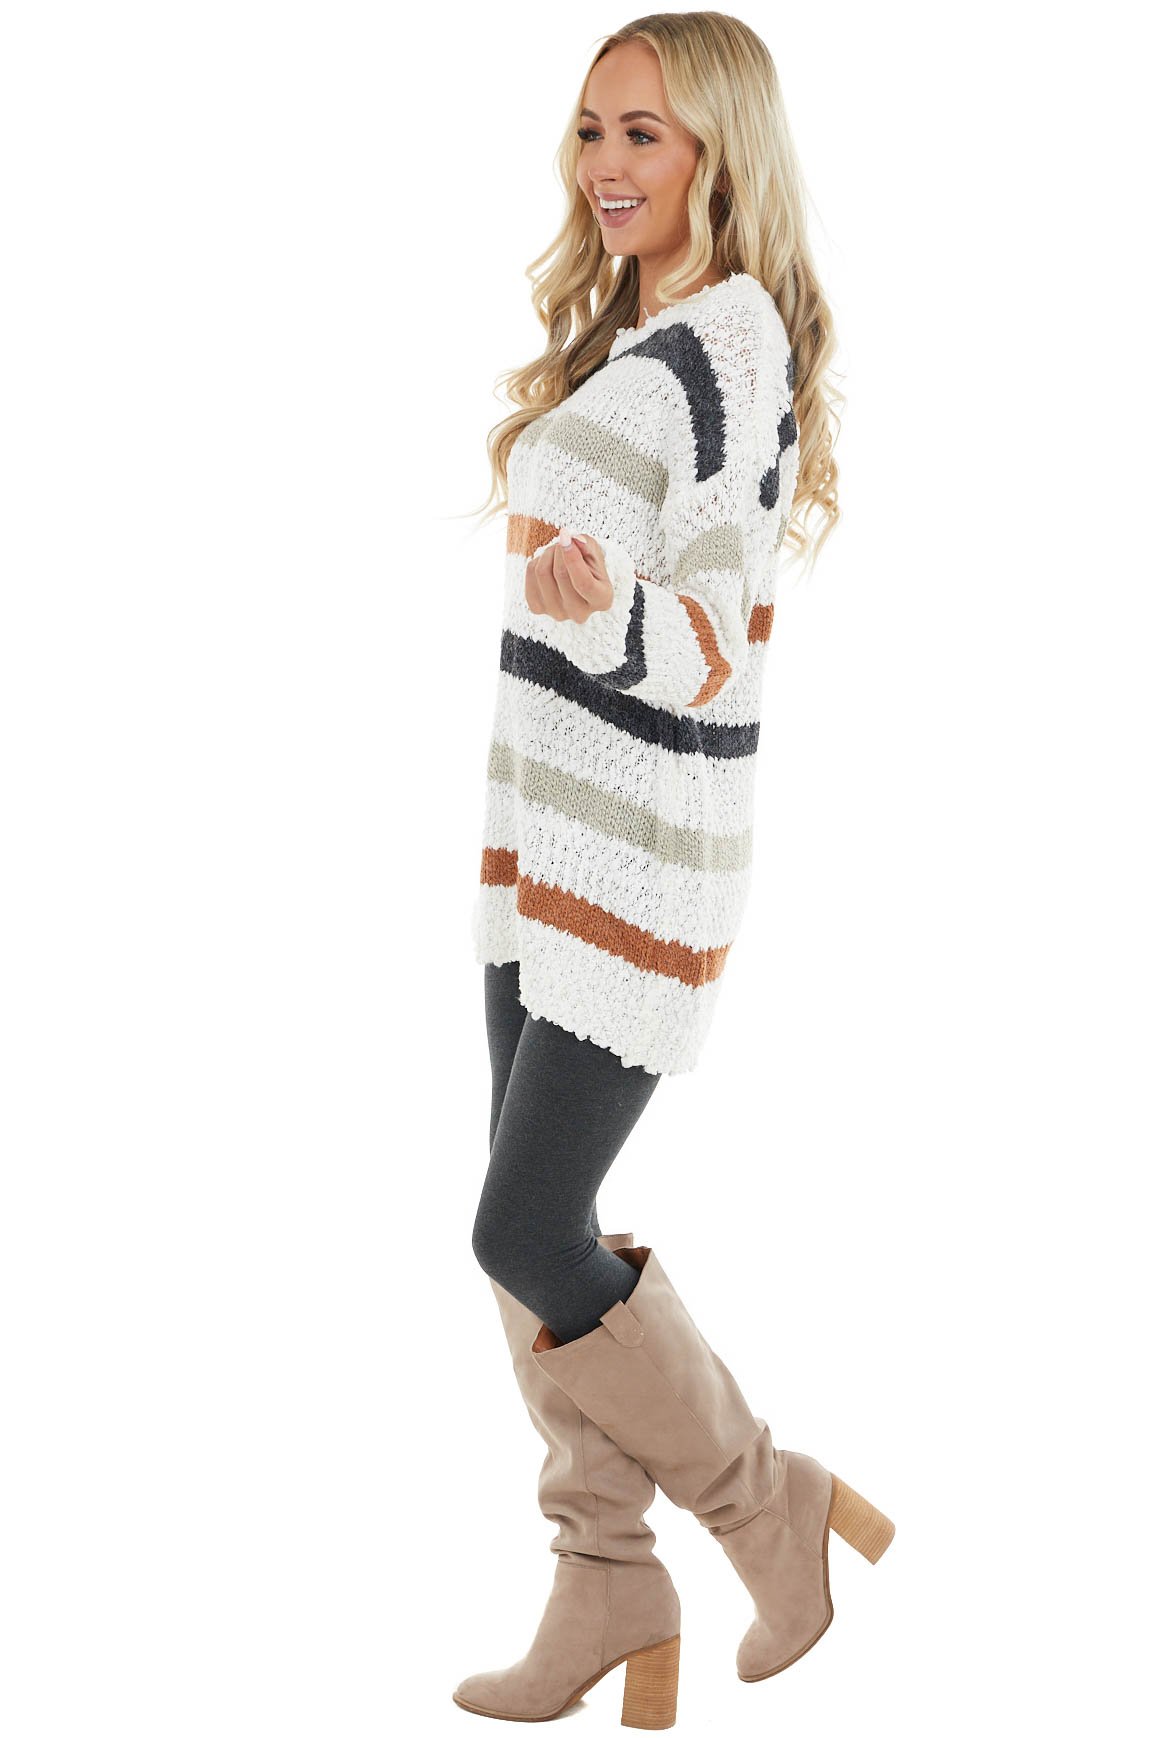 Ivory and Multicolor Striped Print Textured Knit Sweater